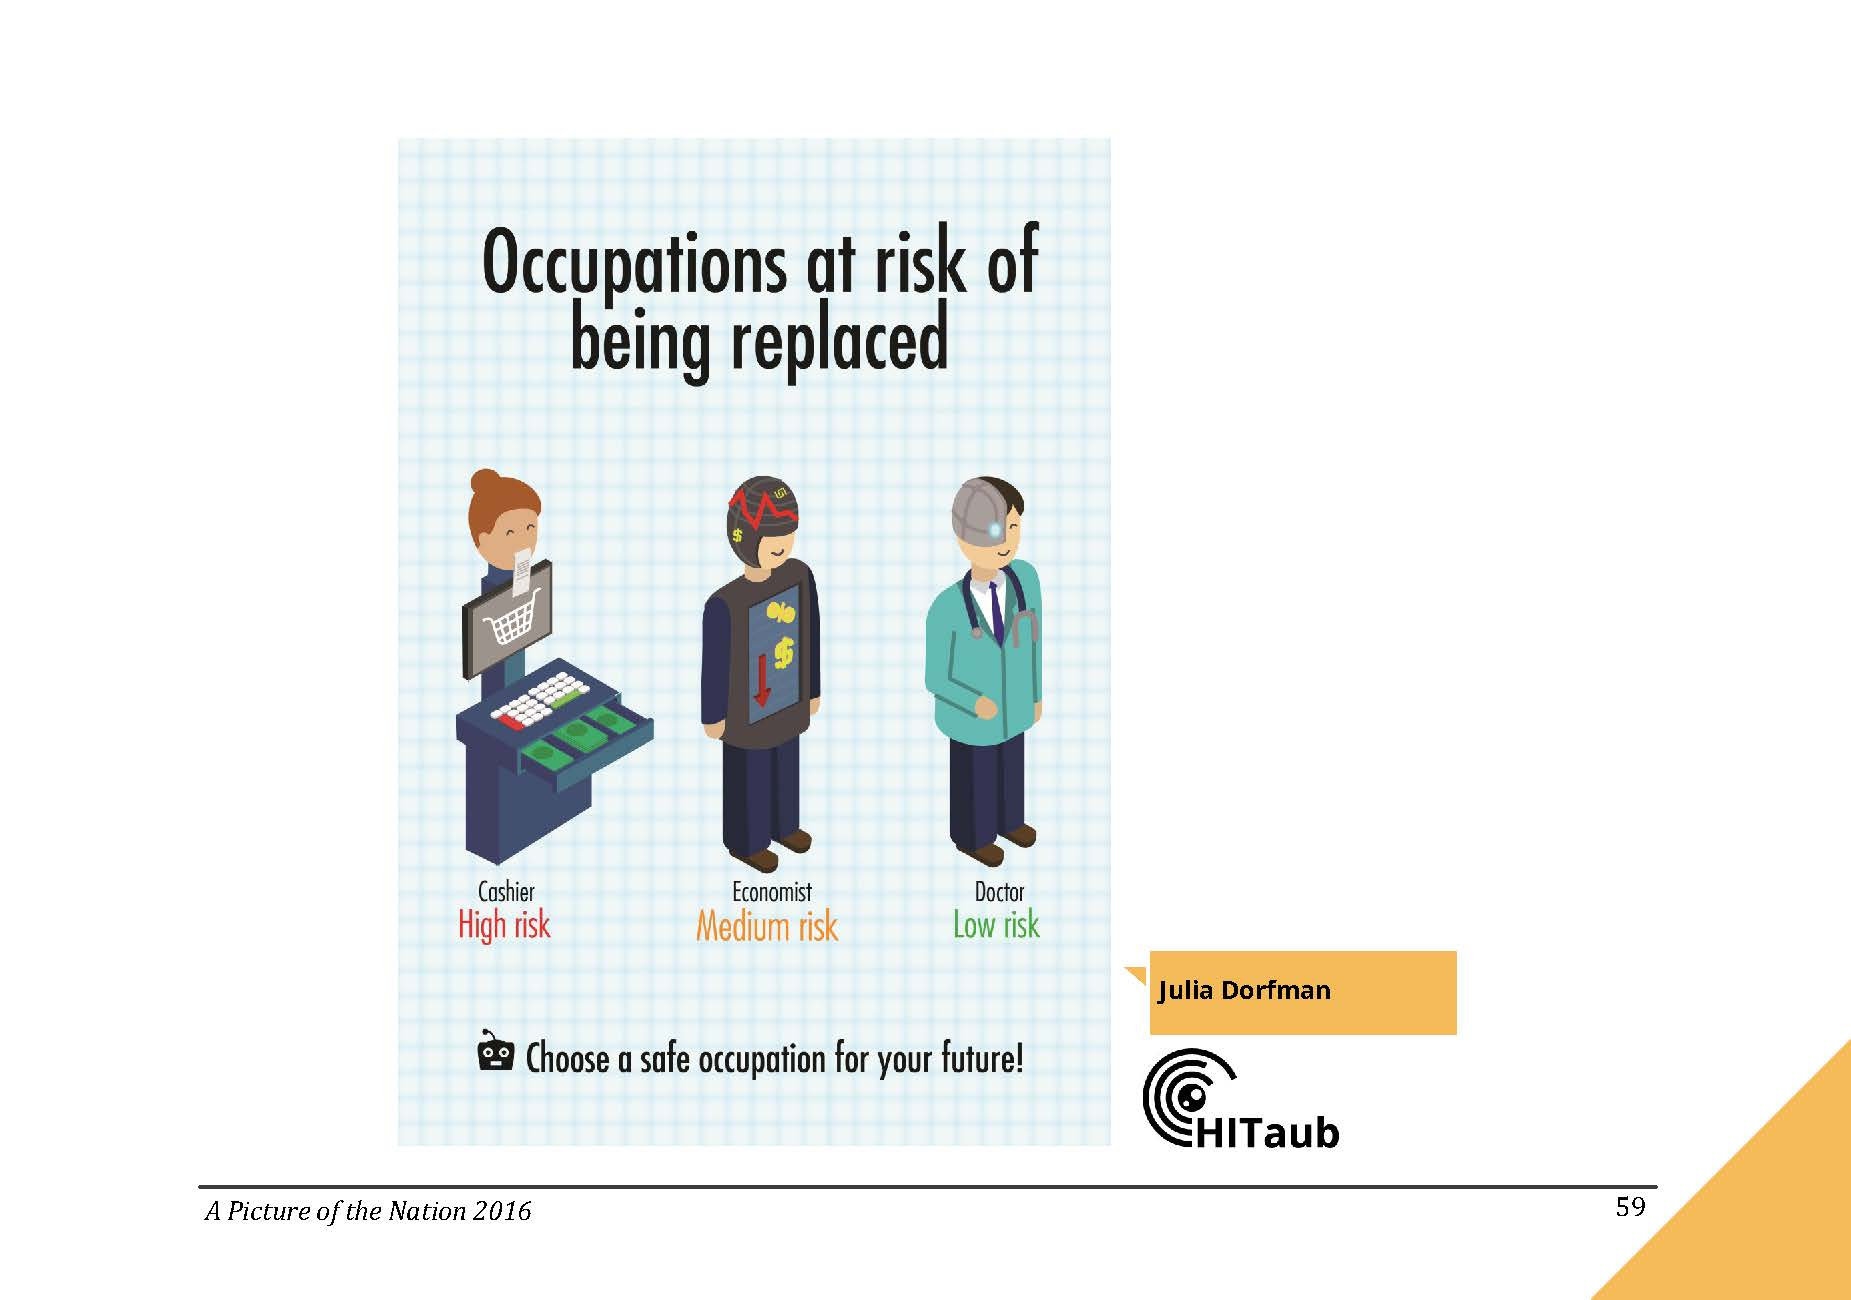 Occupations at risk of being replaced by technology